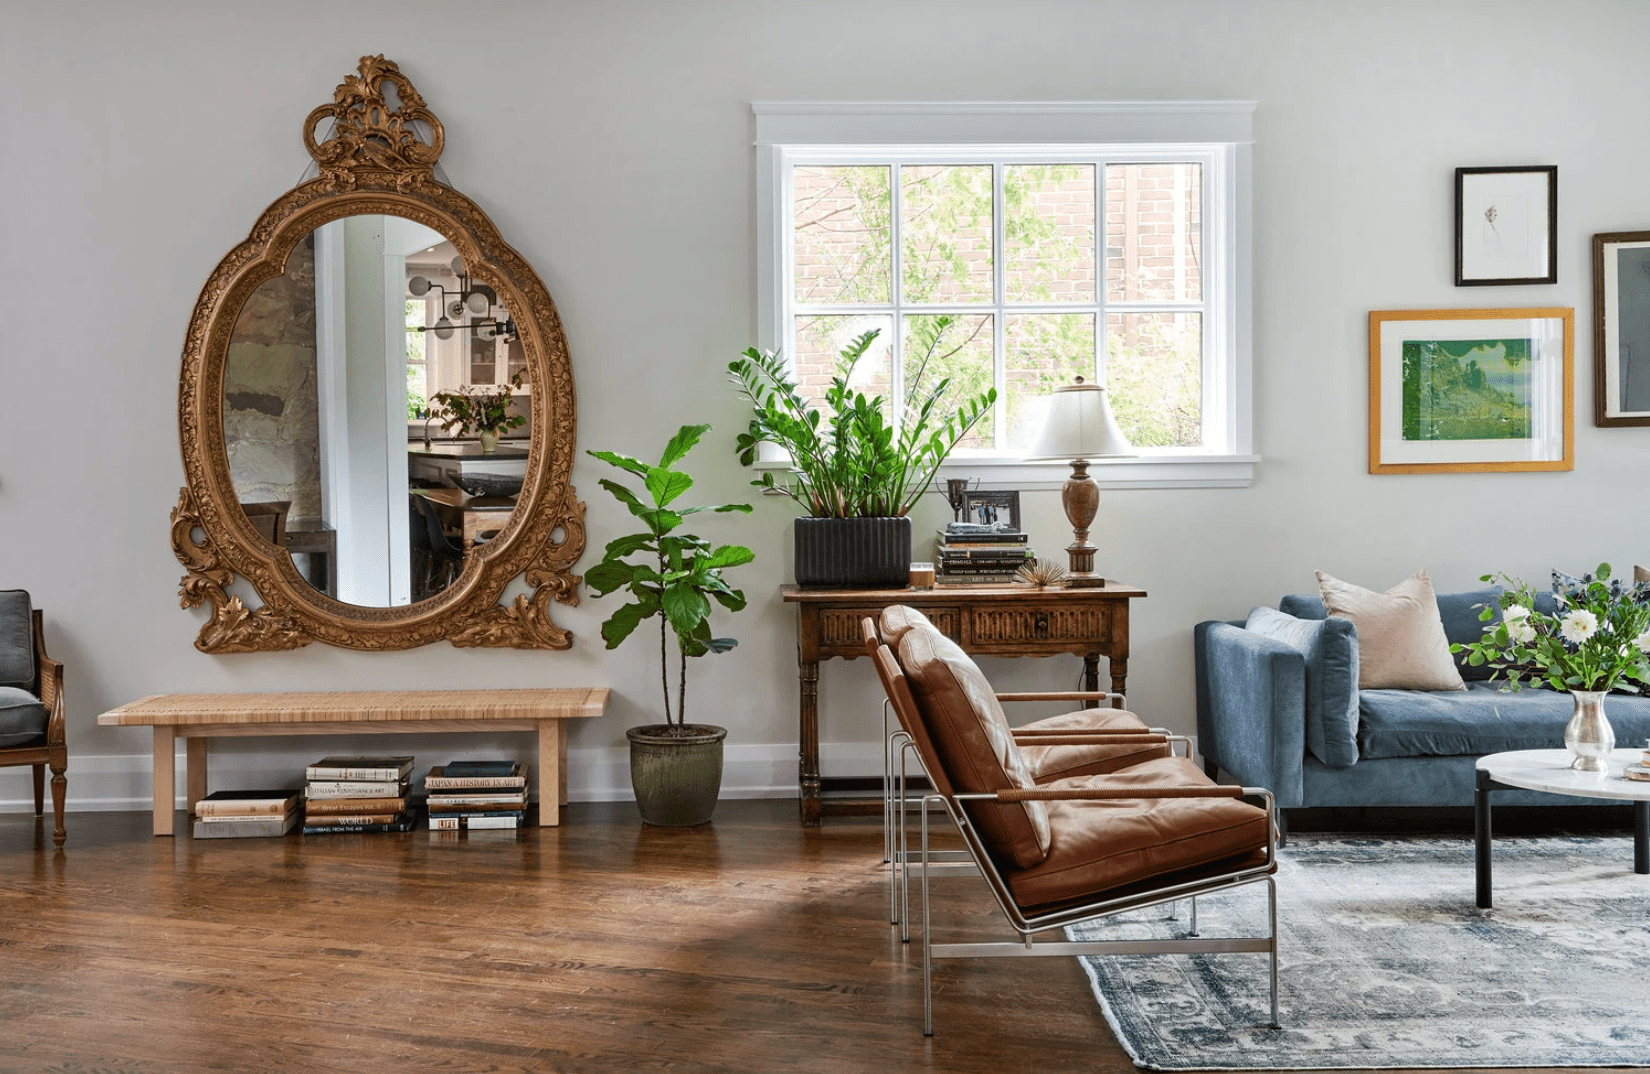 A living room with a large ornate mirror